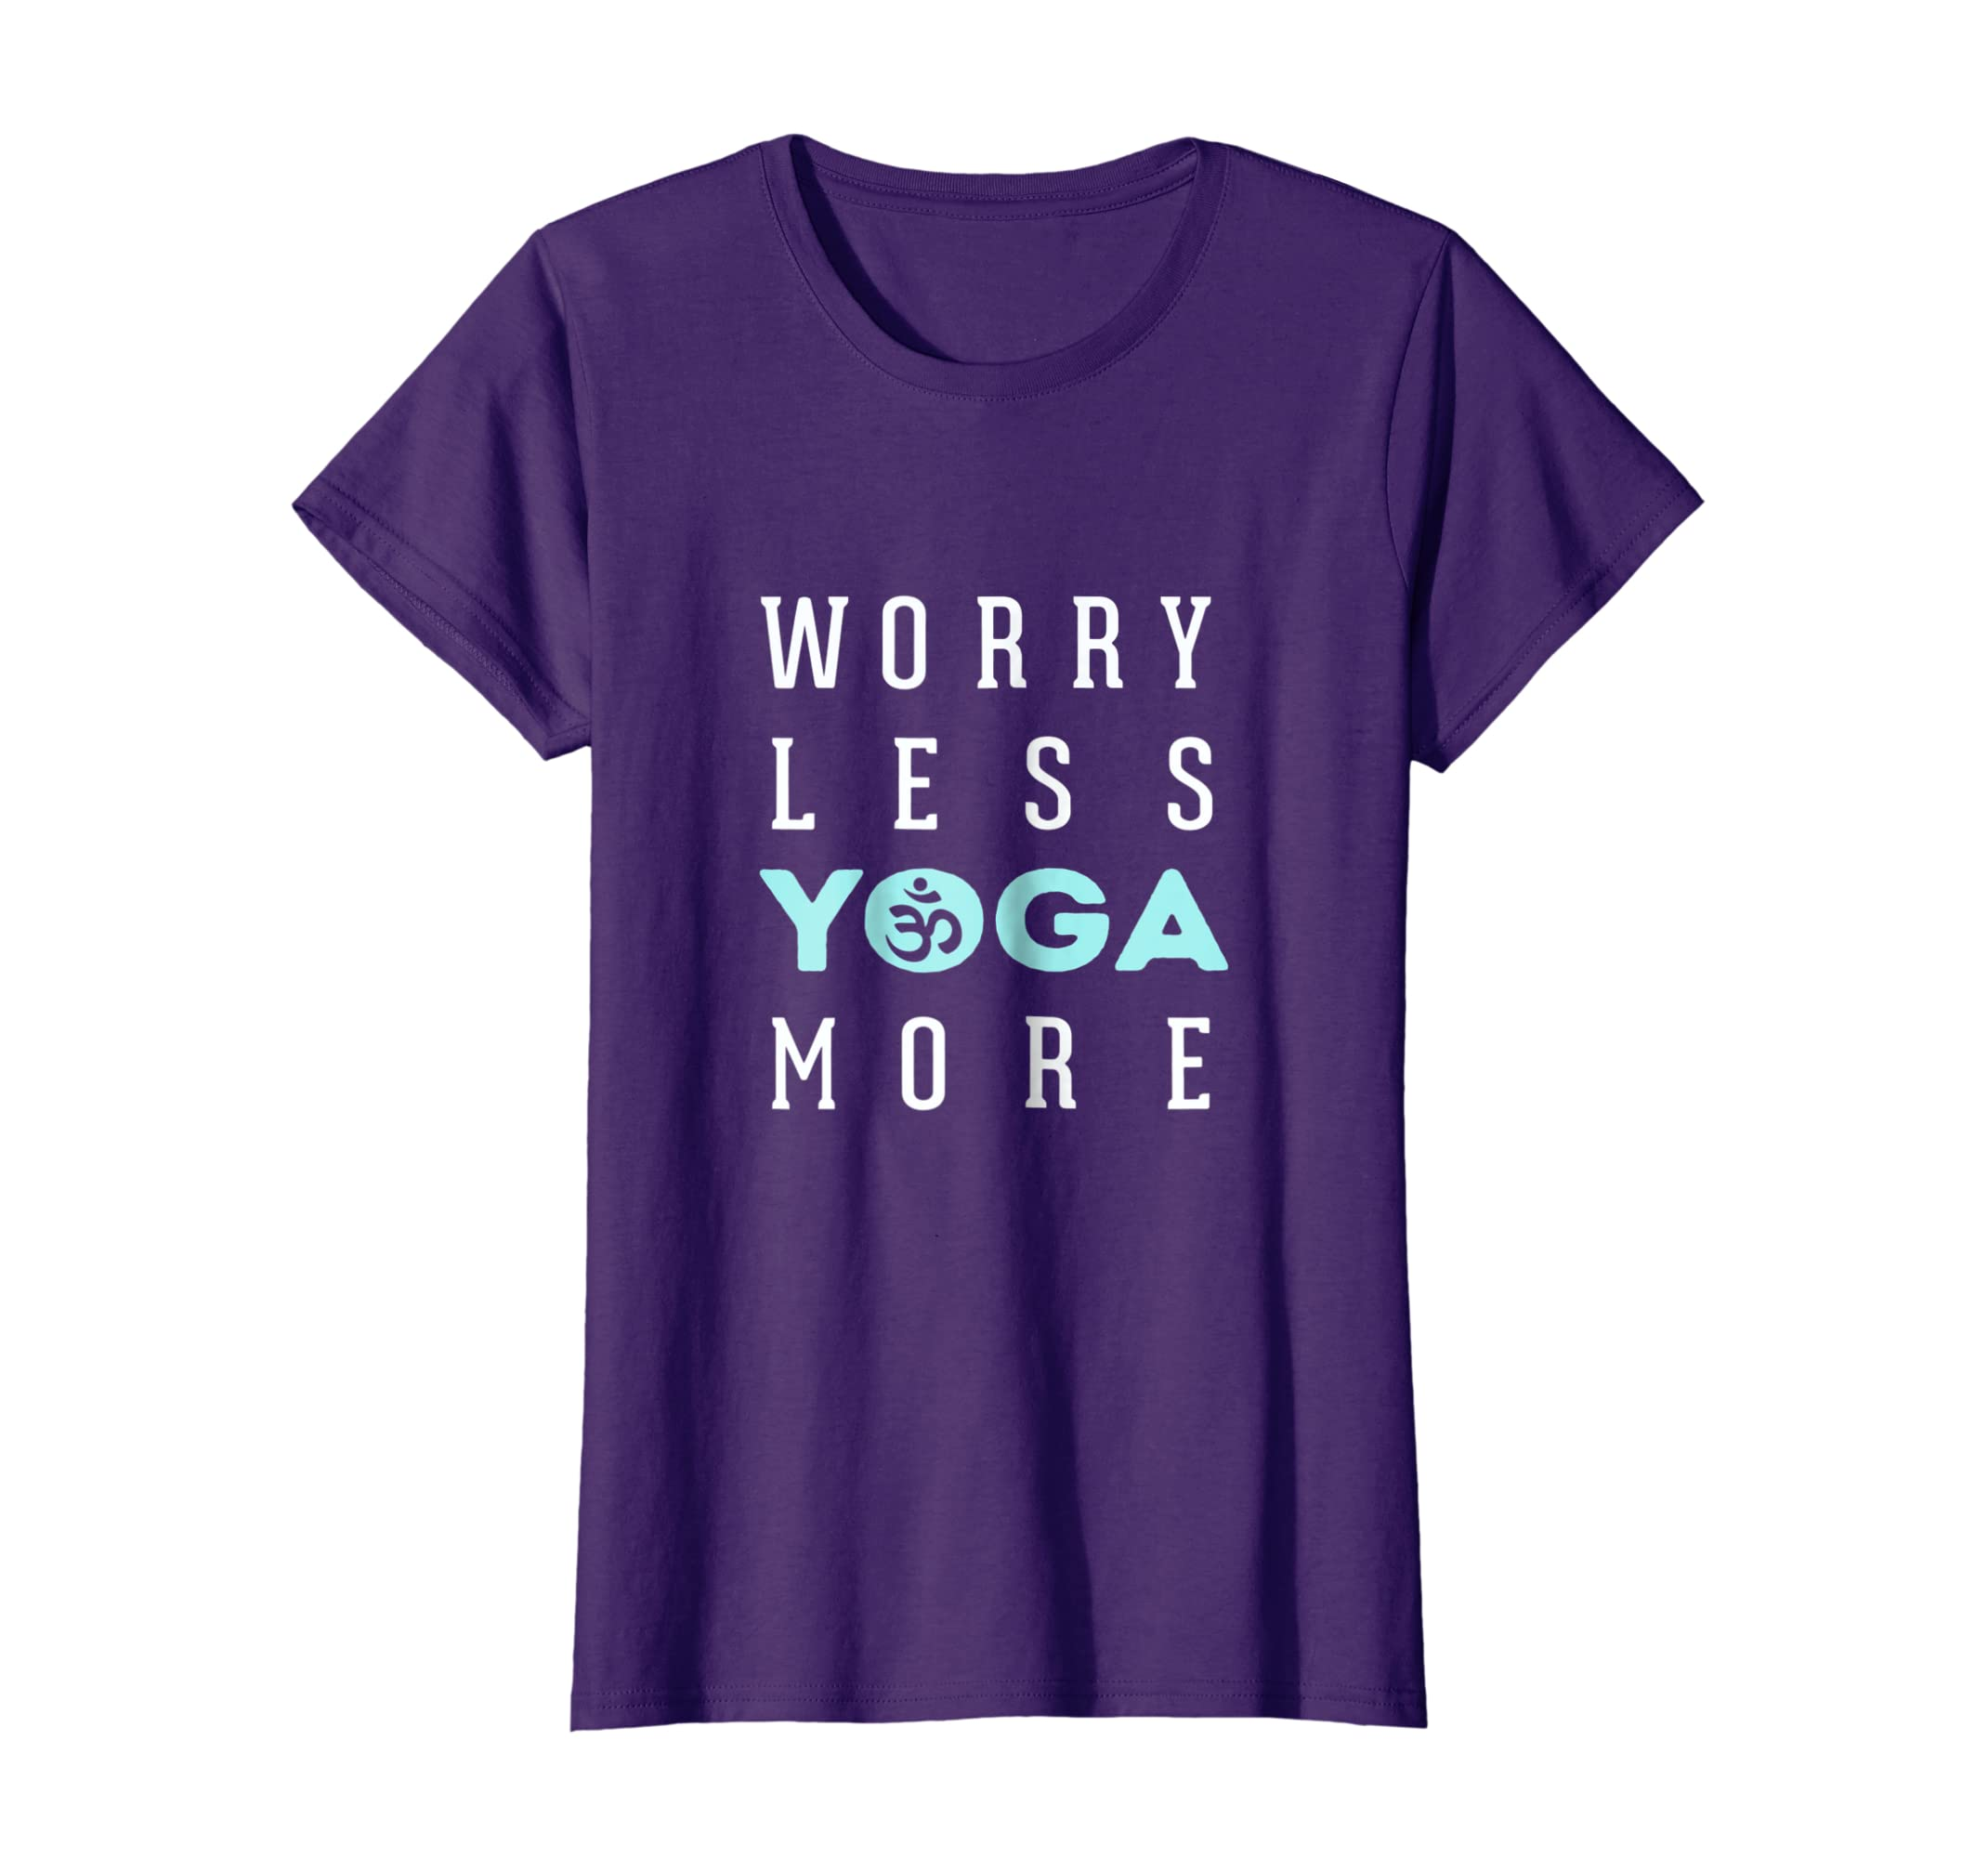 Amazon.com: Worry less Yoga more t-shirt tee: Clothing